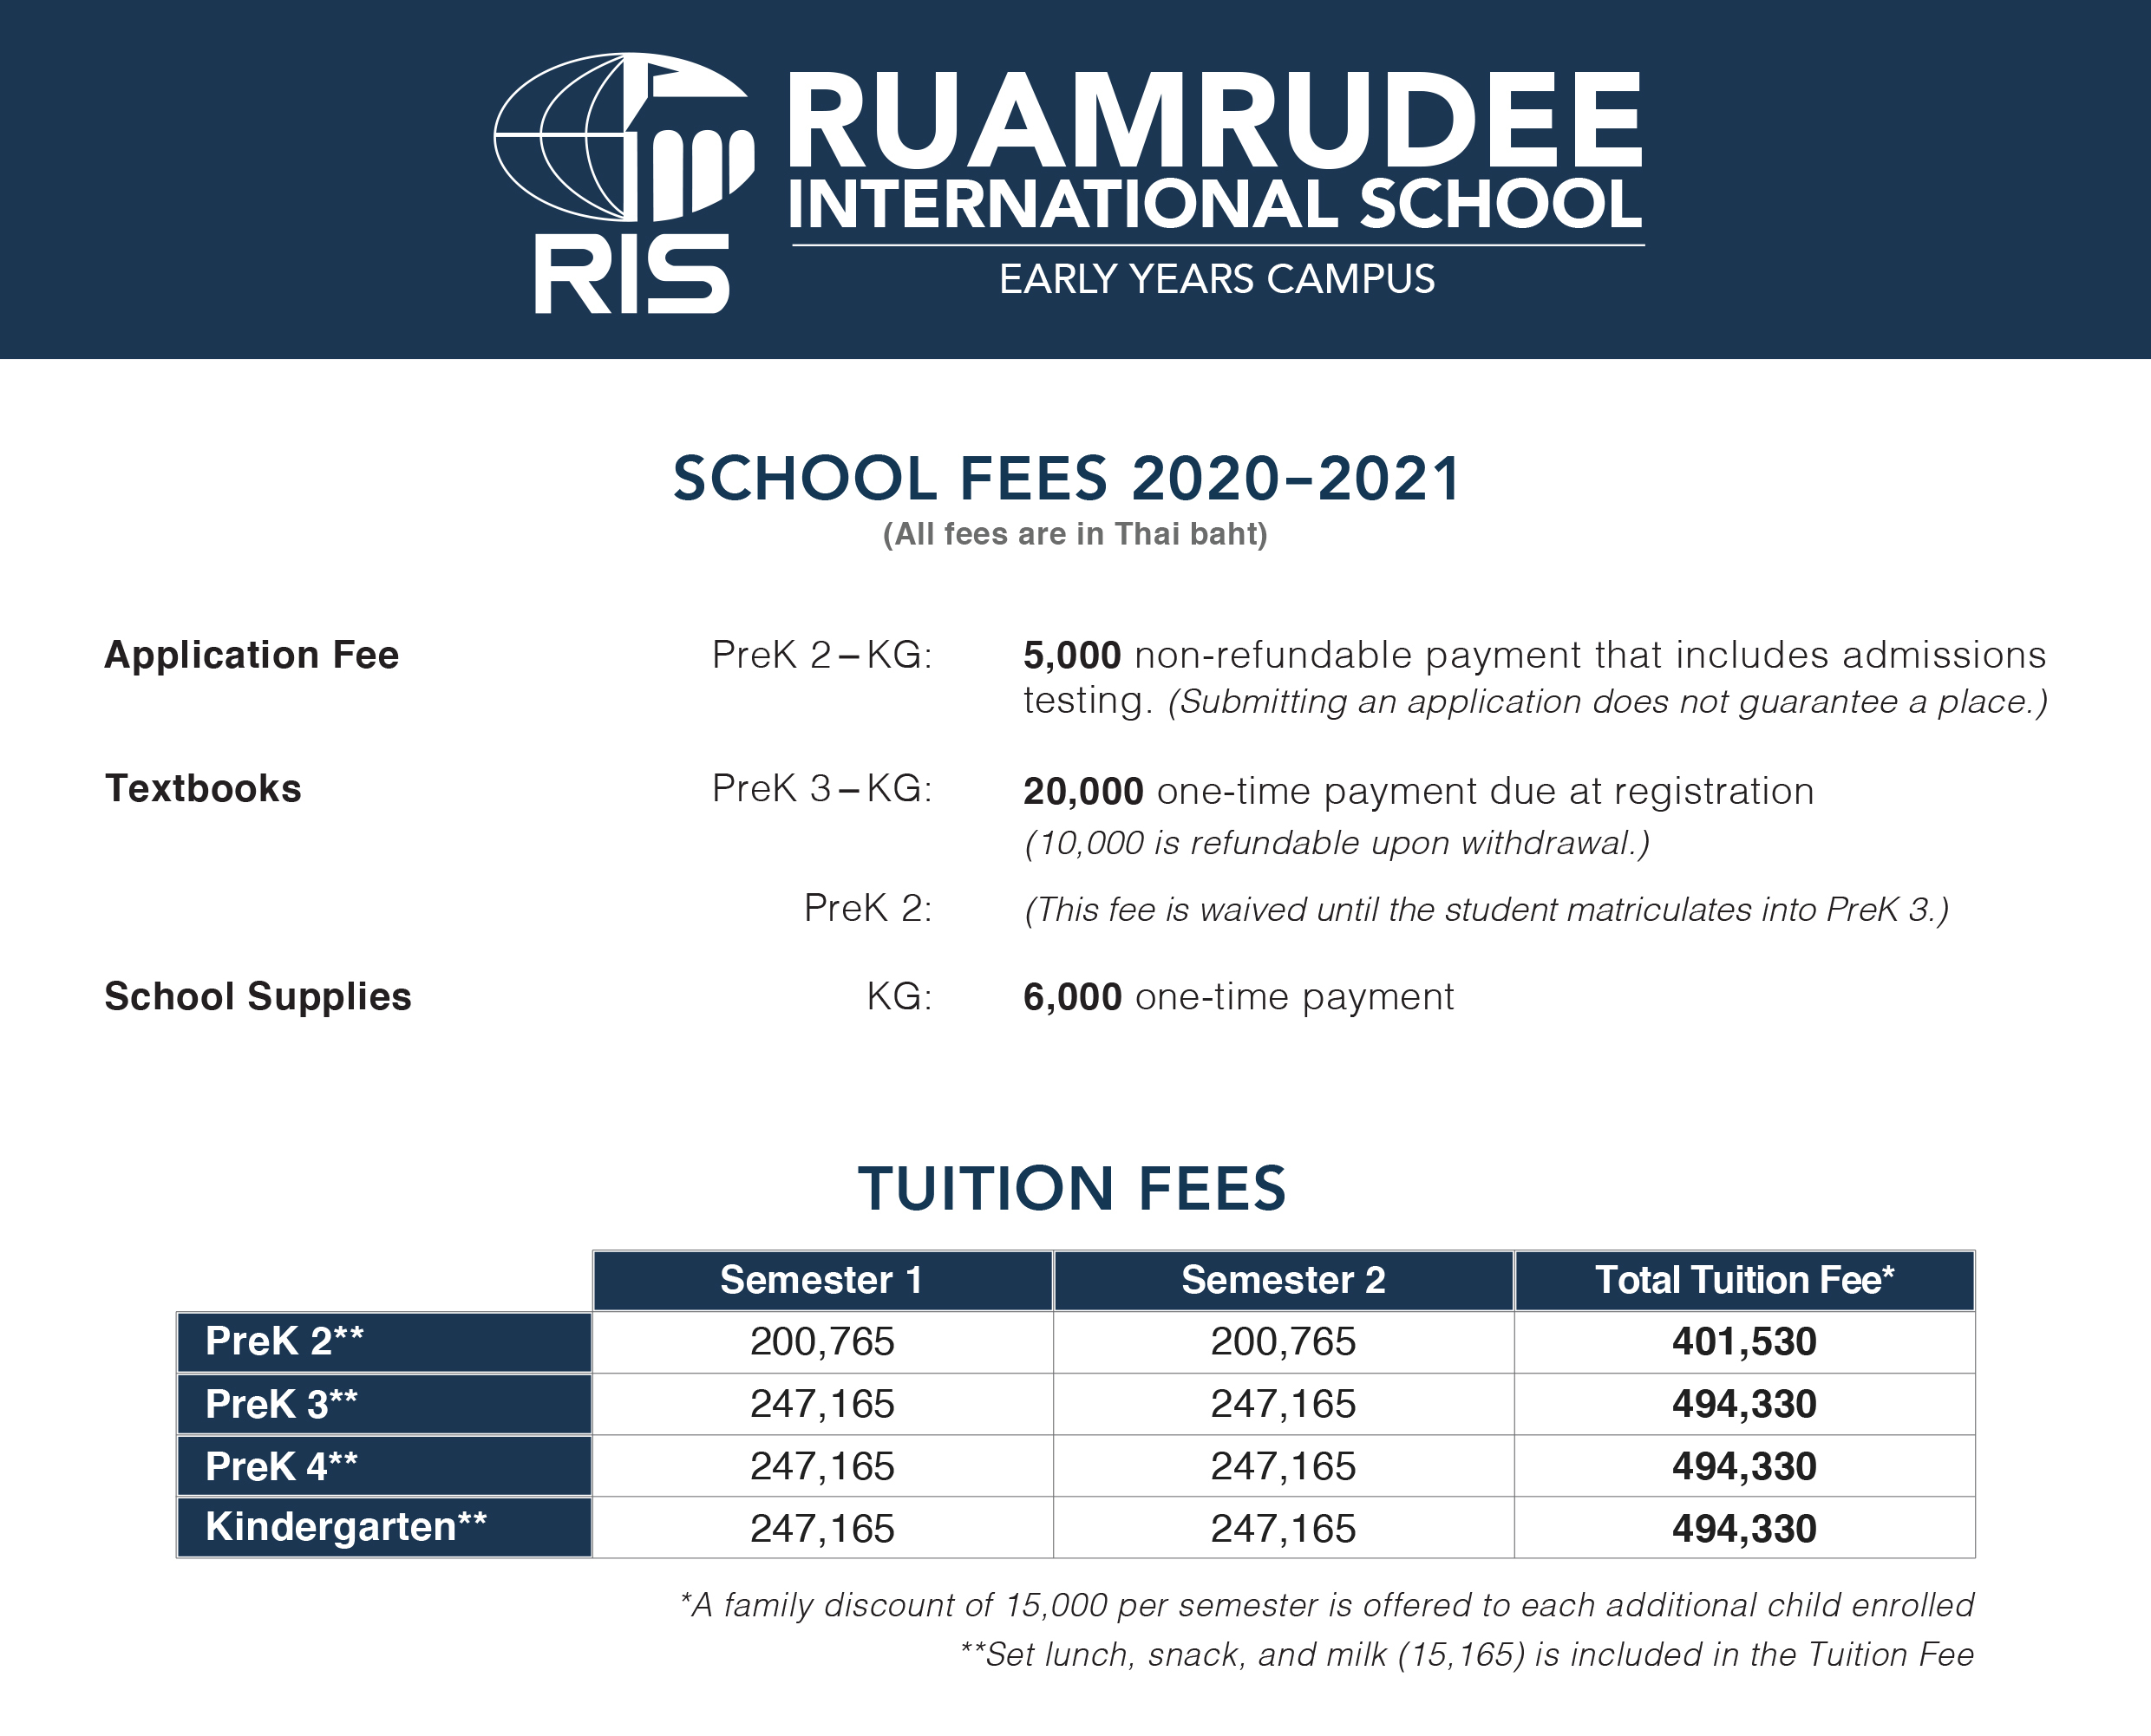 Early years tuition Fee